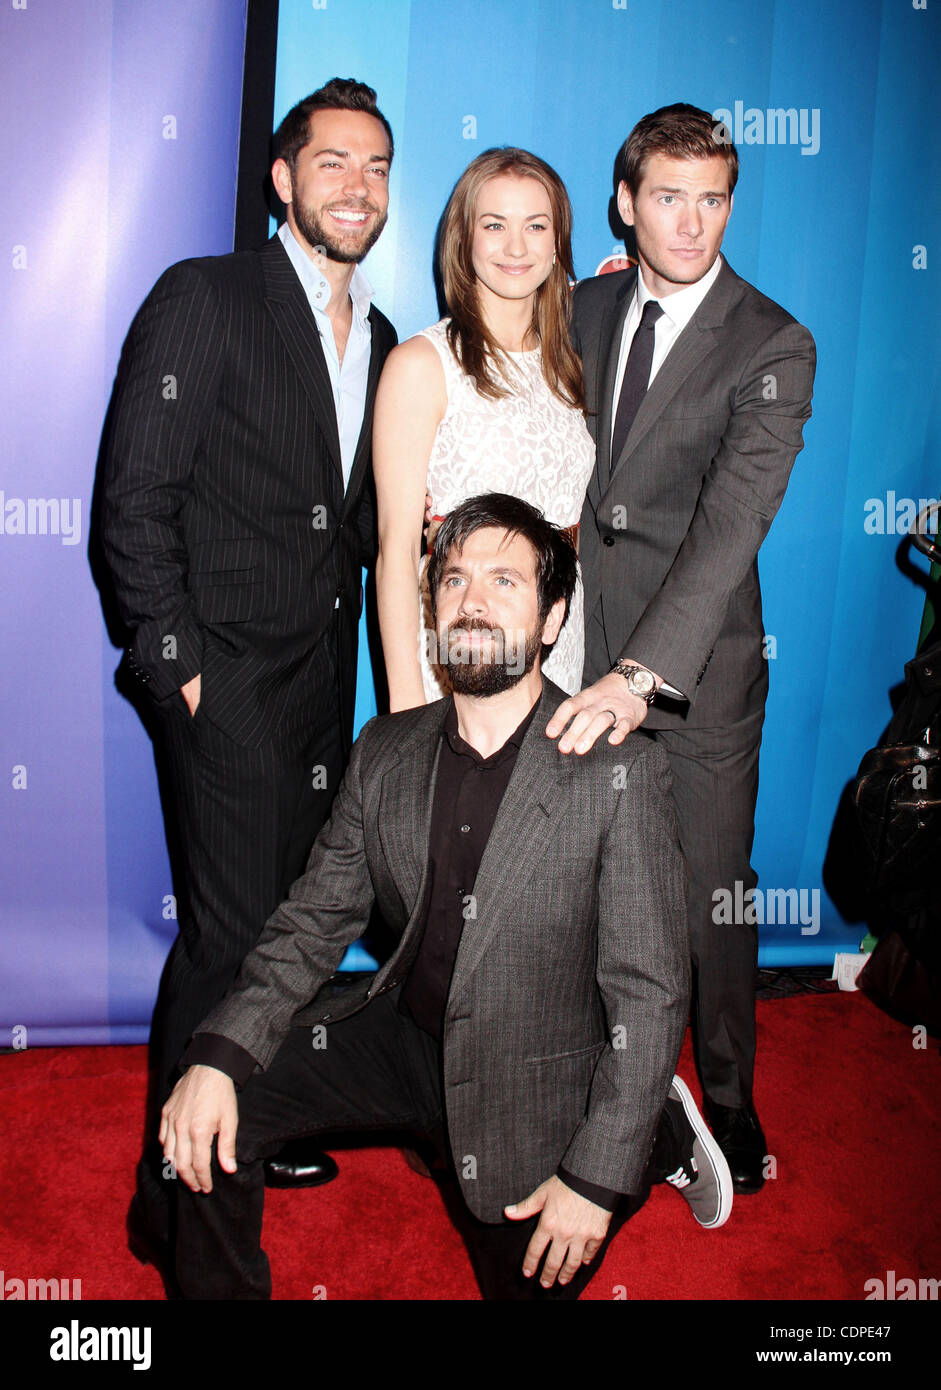 Zachary Levi And Joshua Gomez High Resolution Stock Photography And Images Alamy I love how there is so much of zachary levi in flynn. https www alamy com stock photo may 16 2011 new york new york us zachary levi yvonne strahovski ryan 42905303 html